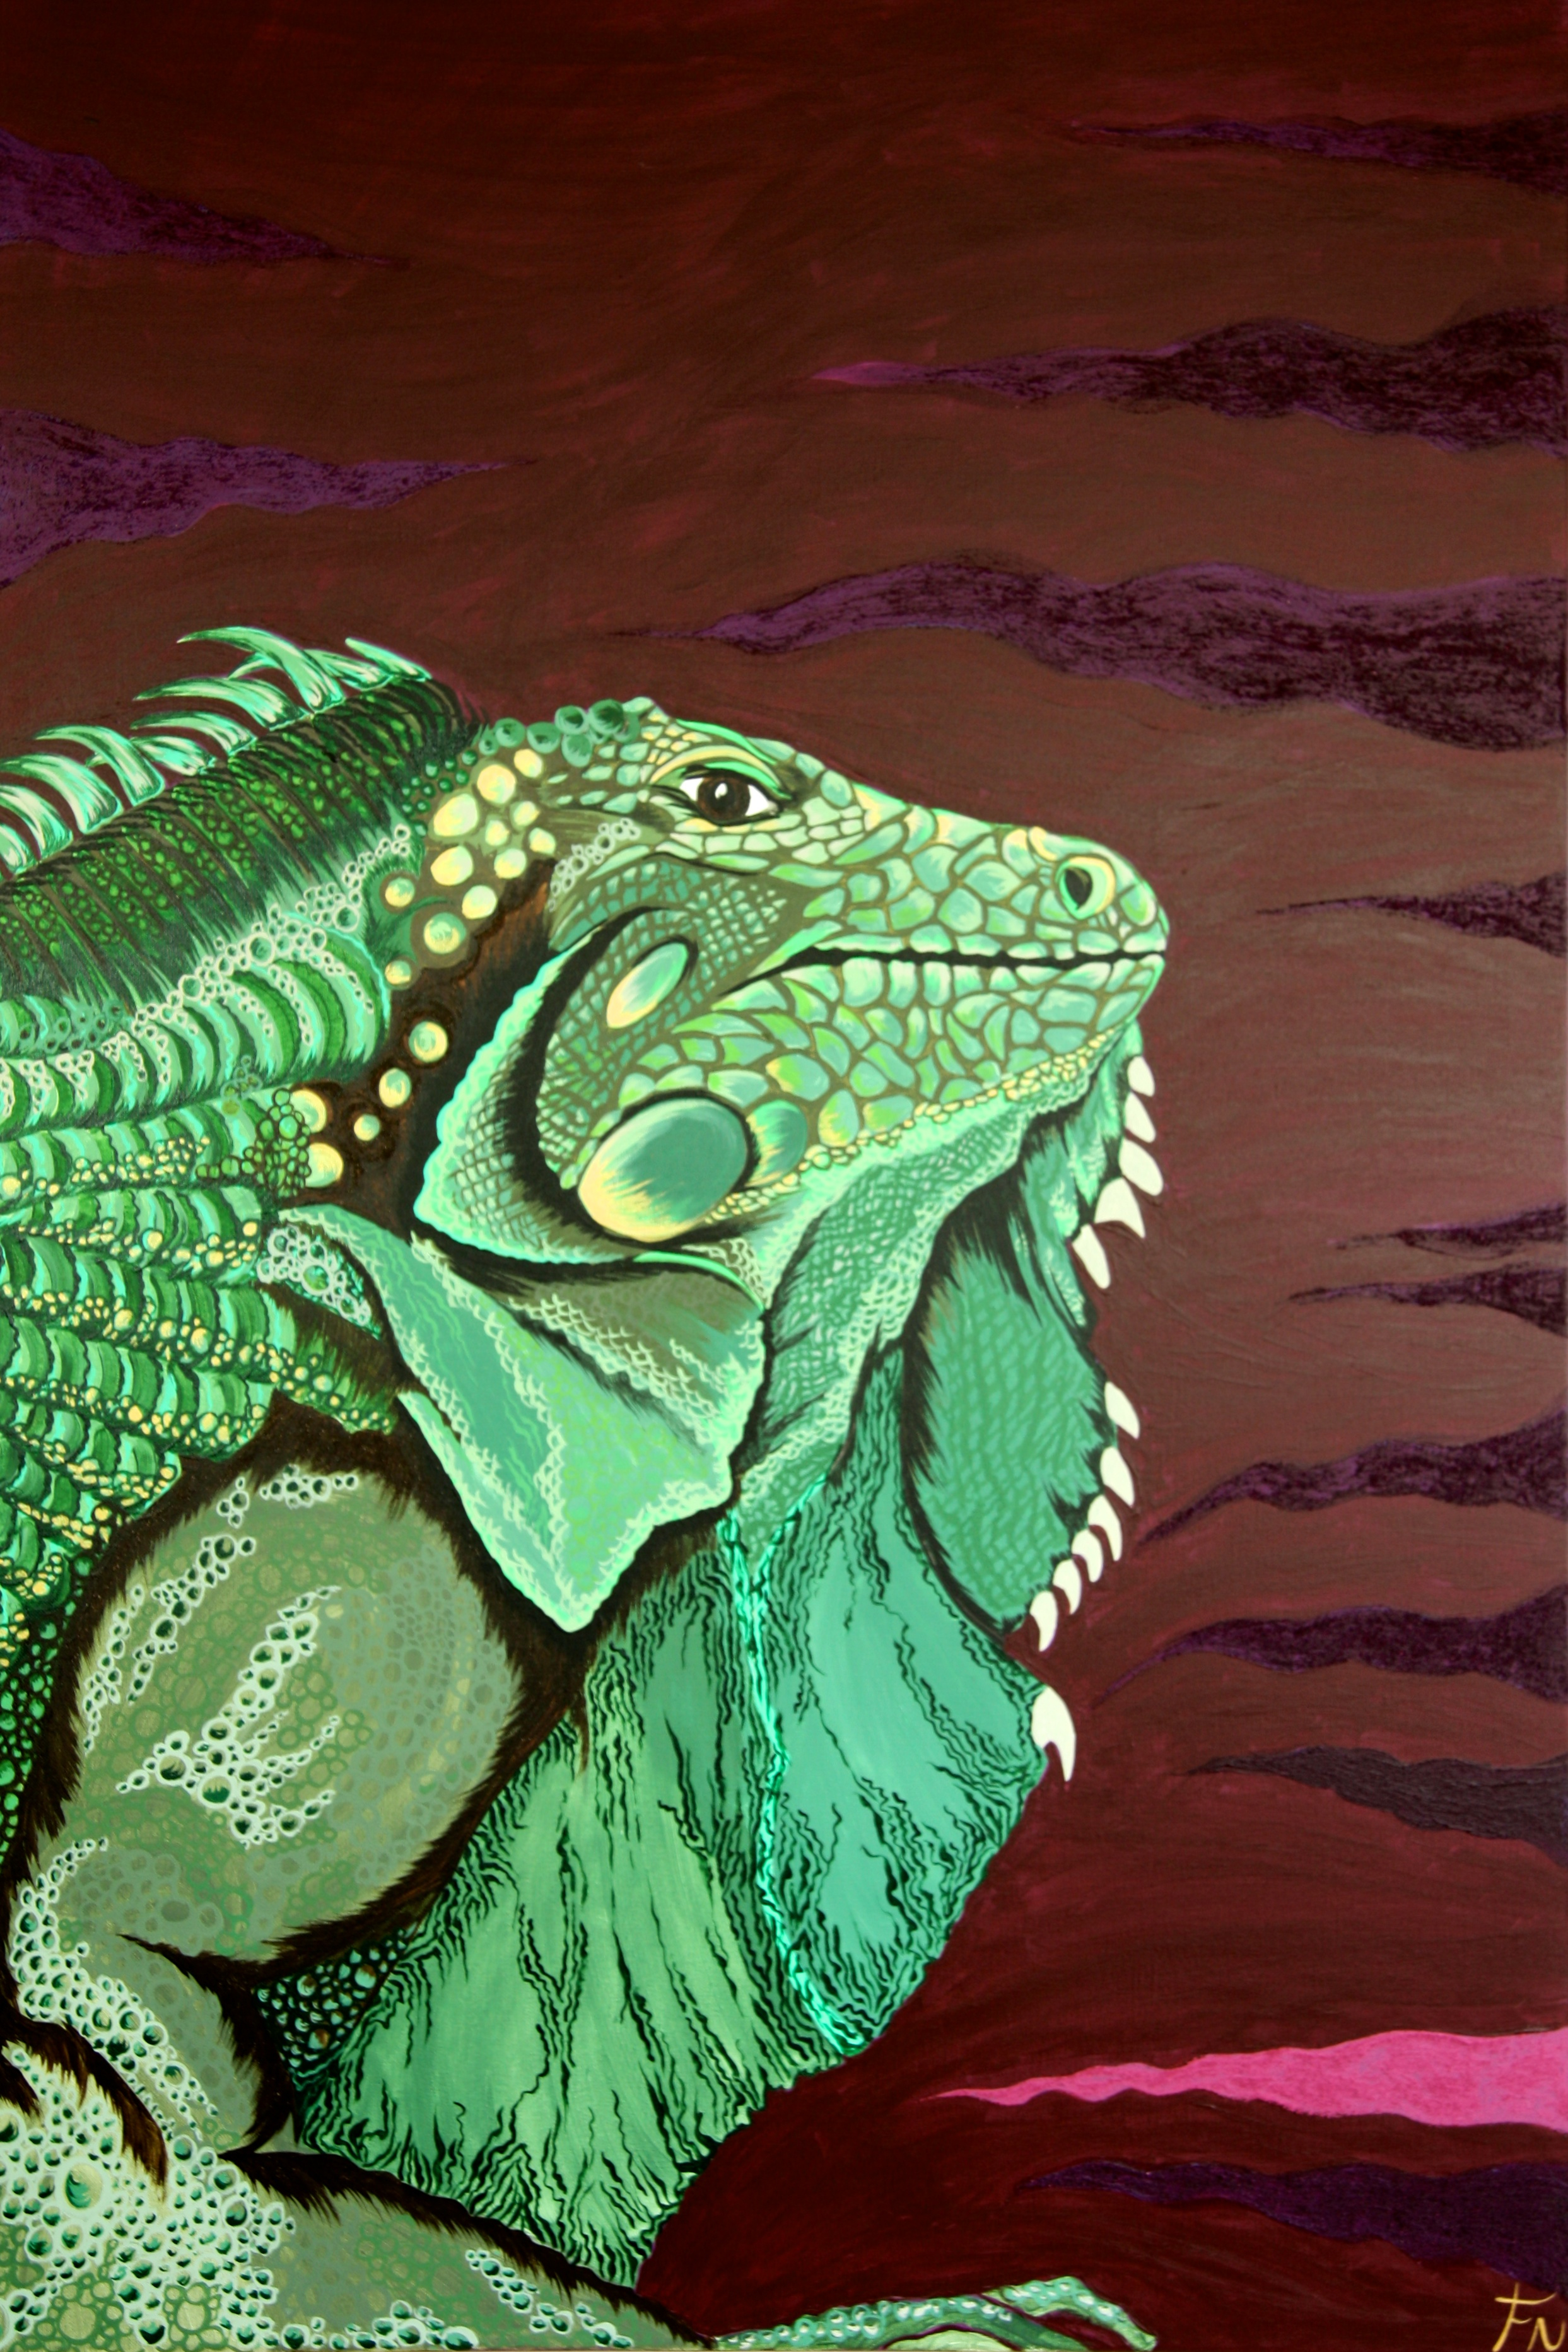 Iguana 120x80cm Contact Feike for pricing info